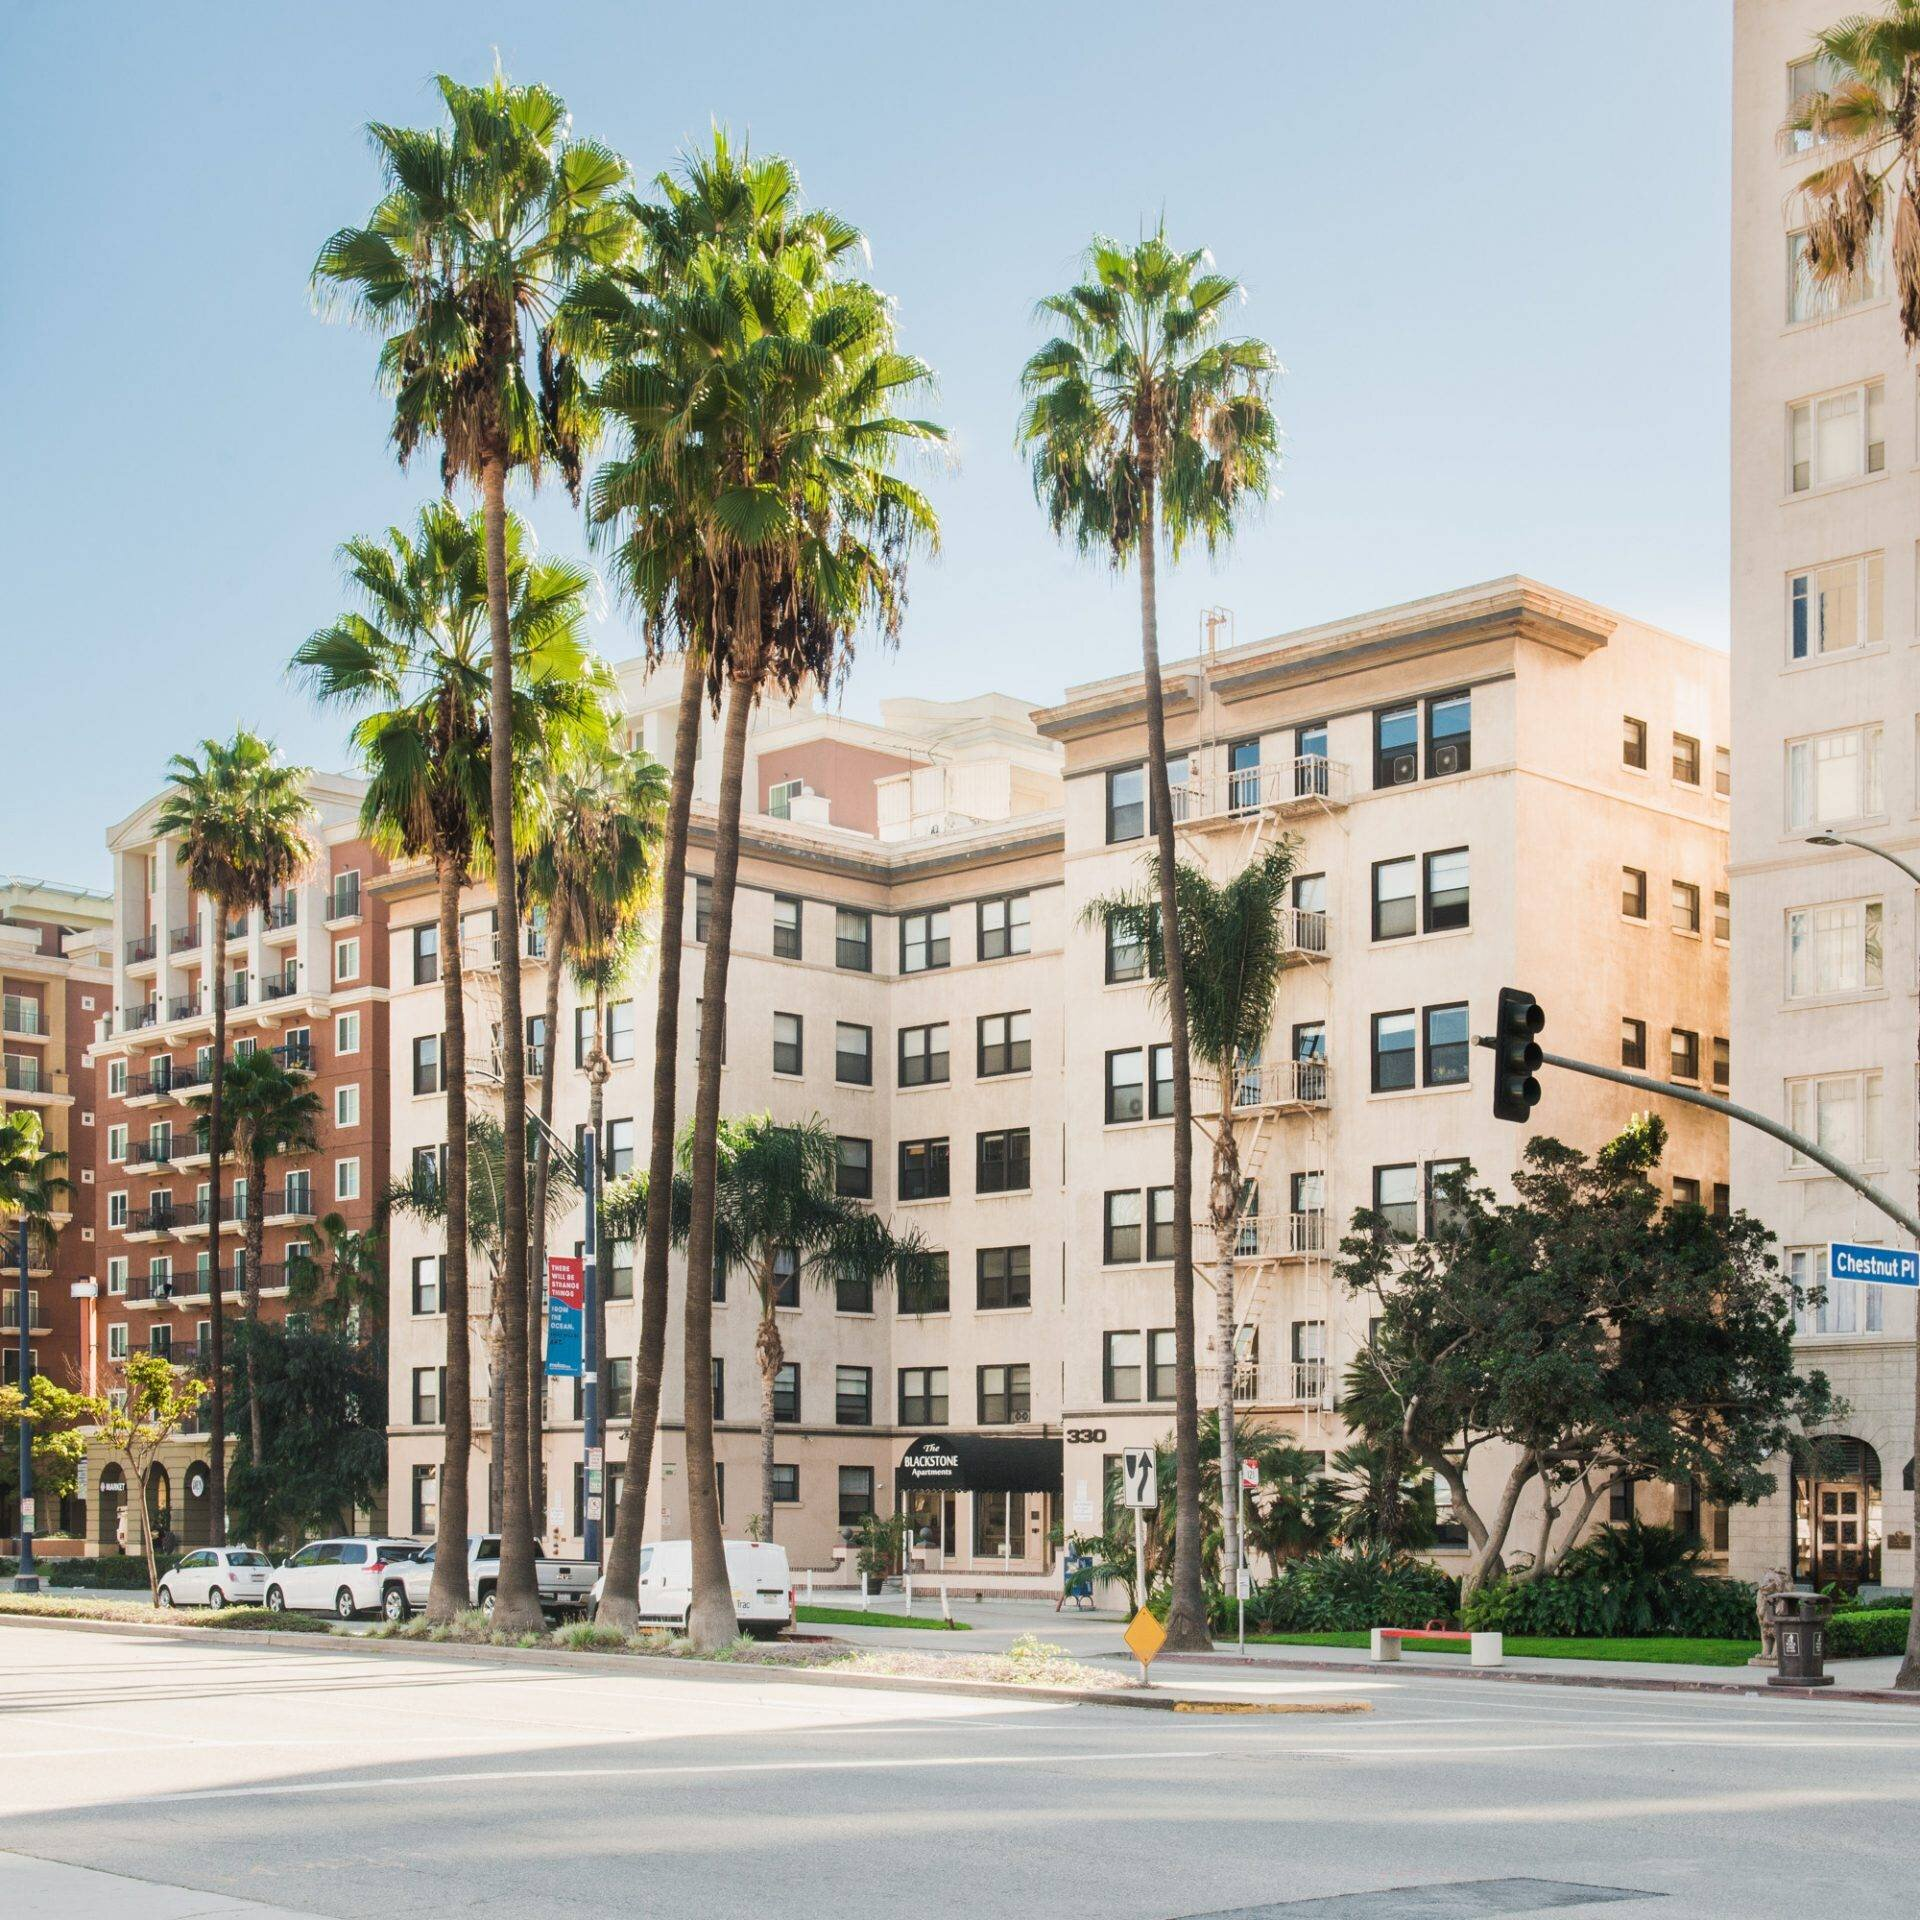 The Blackstone Apartments - The Blackstone Apartments are a historic landmark built in 1923. The Blackstone has 106 studio-style and one bedroom units and is located across from the Pike and the Aquarium of the Pacific in the heart of downtown Long Beach.